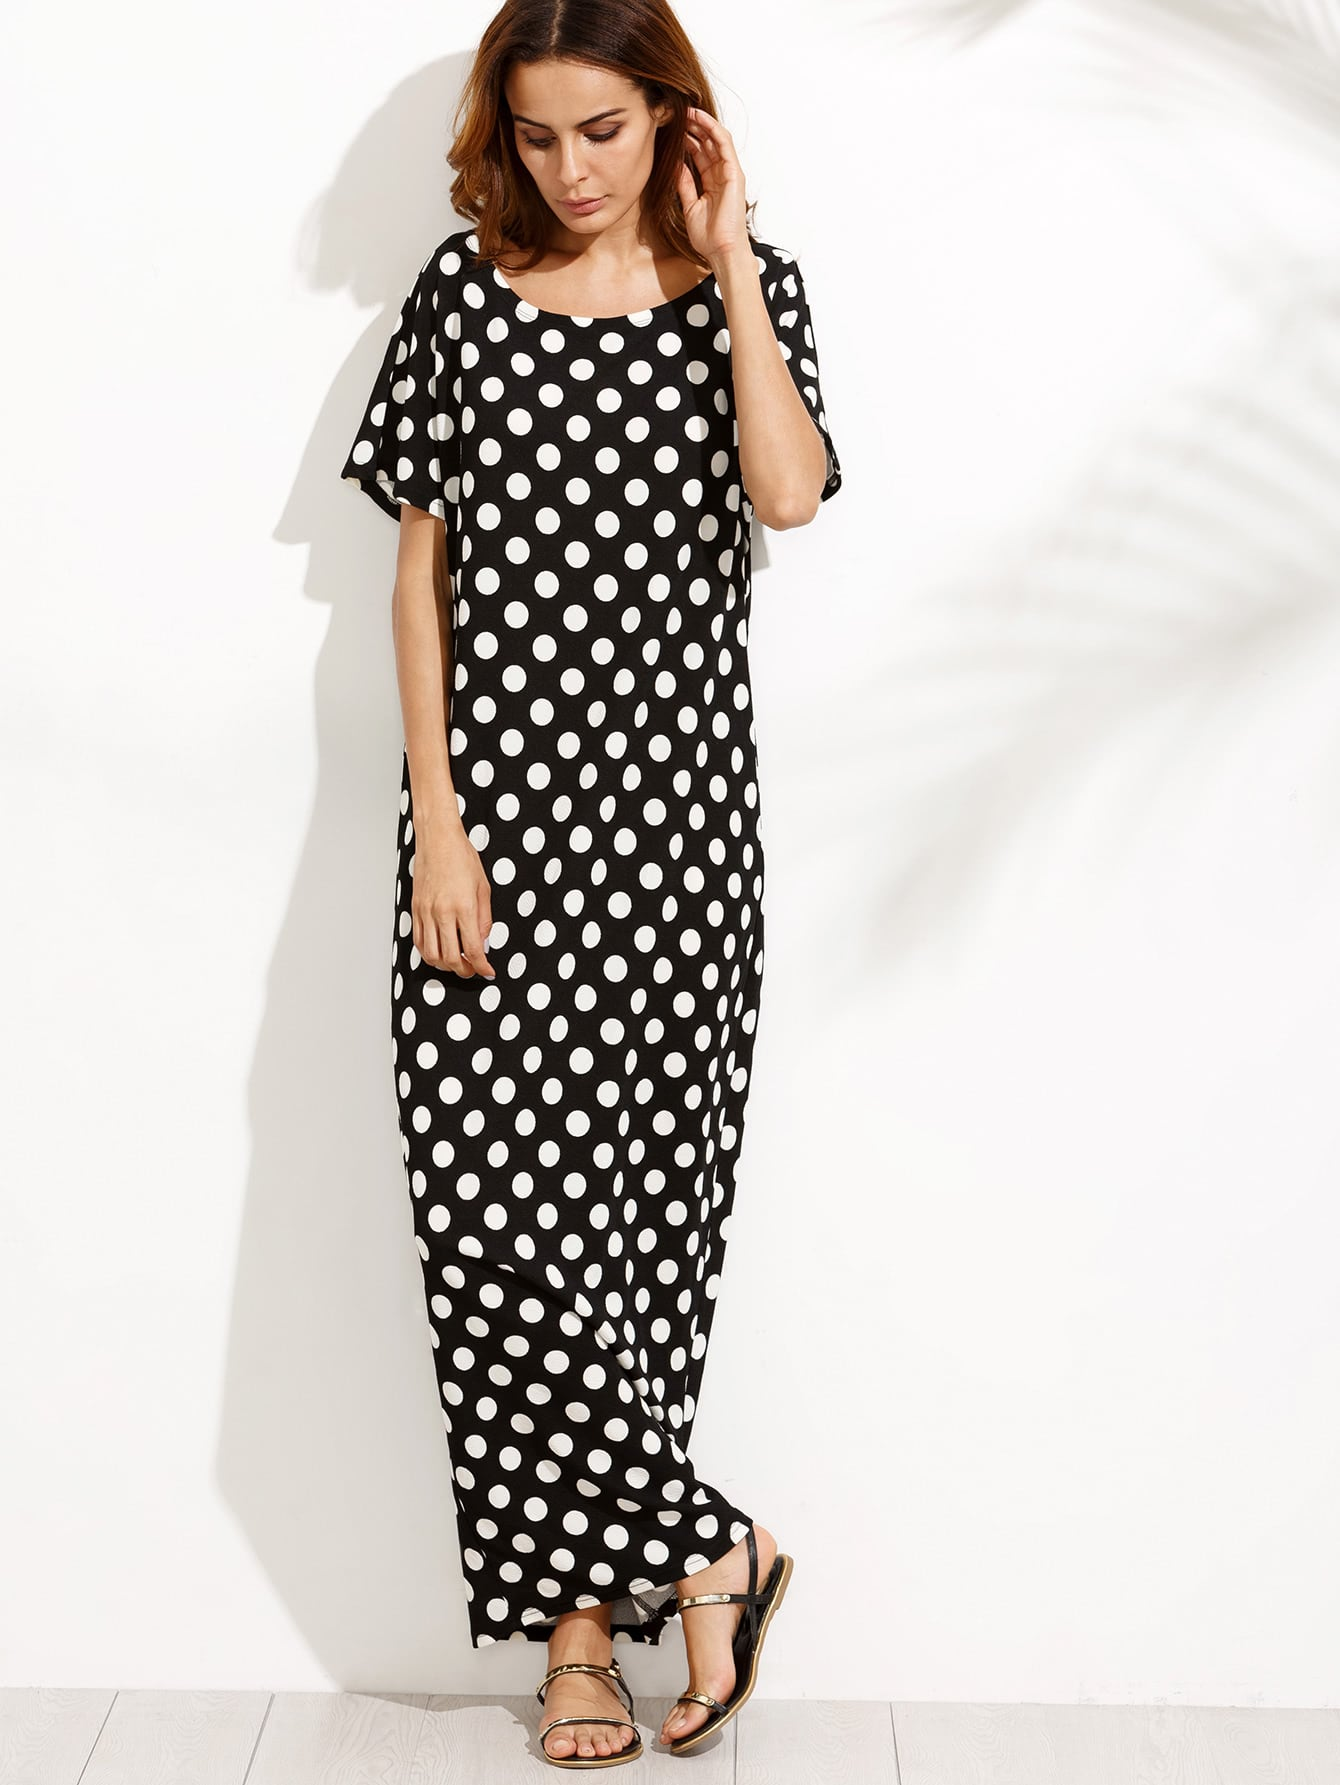 Black and White Polka Dot Pocket Maxi Dress